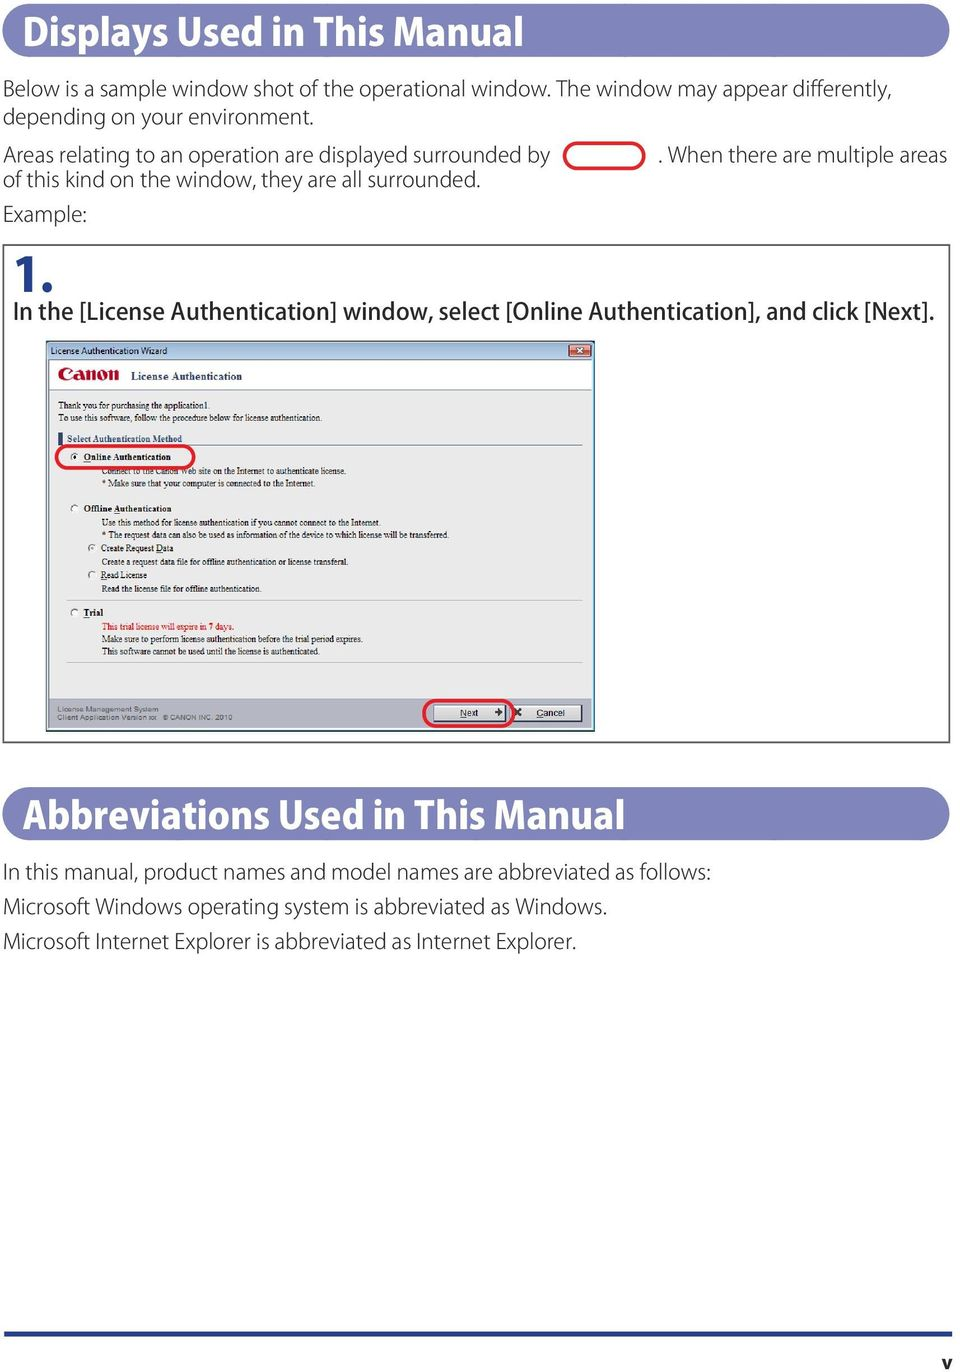 In the [License Authentication] window, select [Online Authentication], and click [Next].